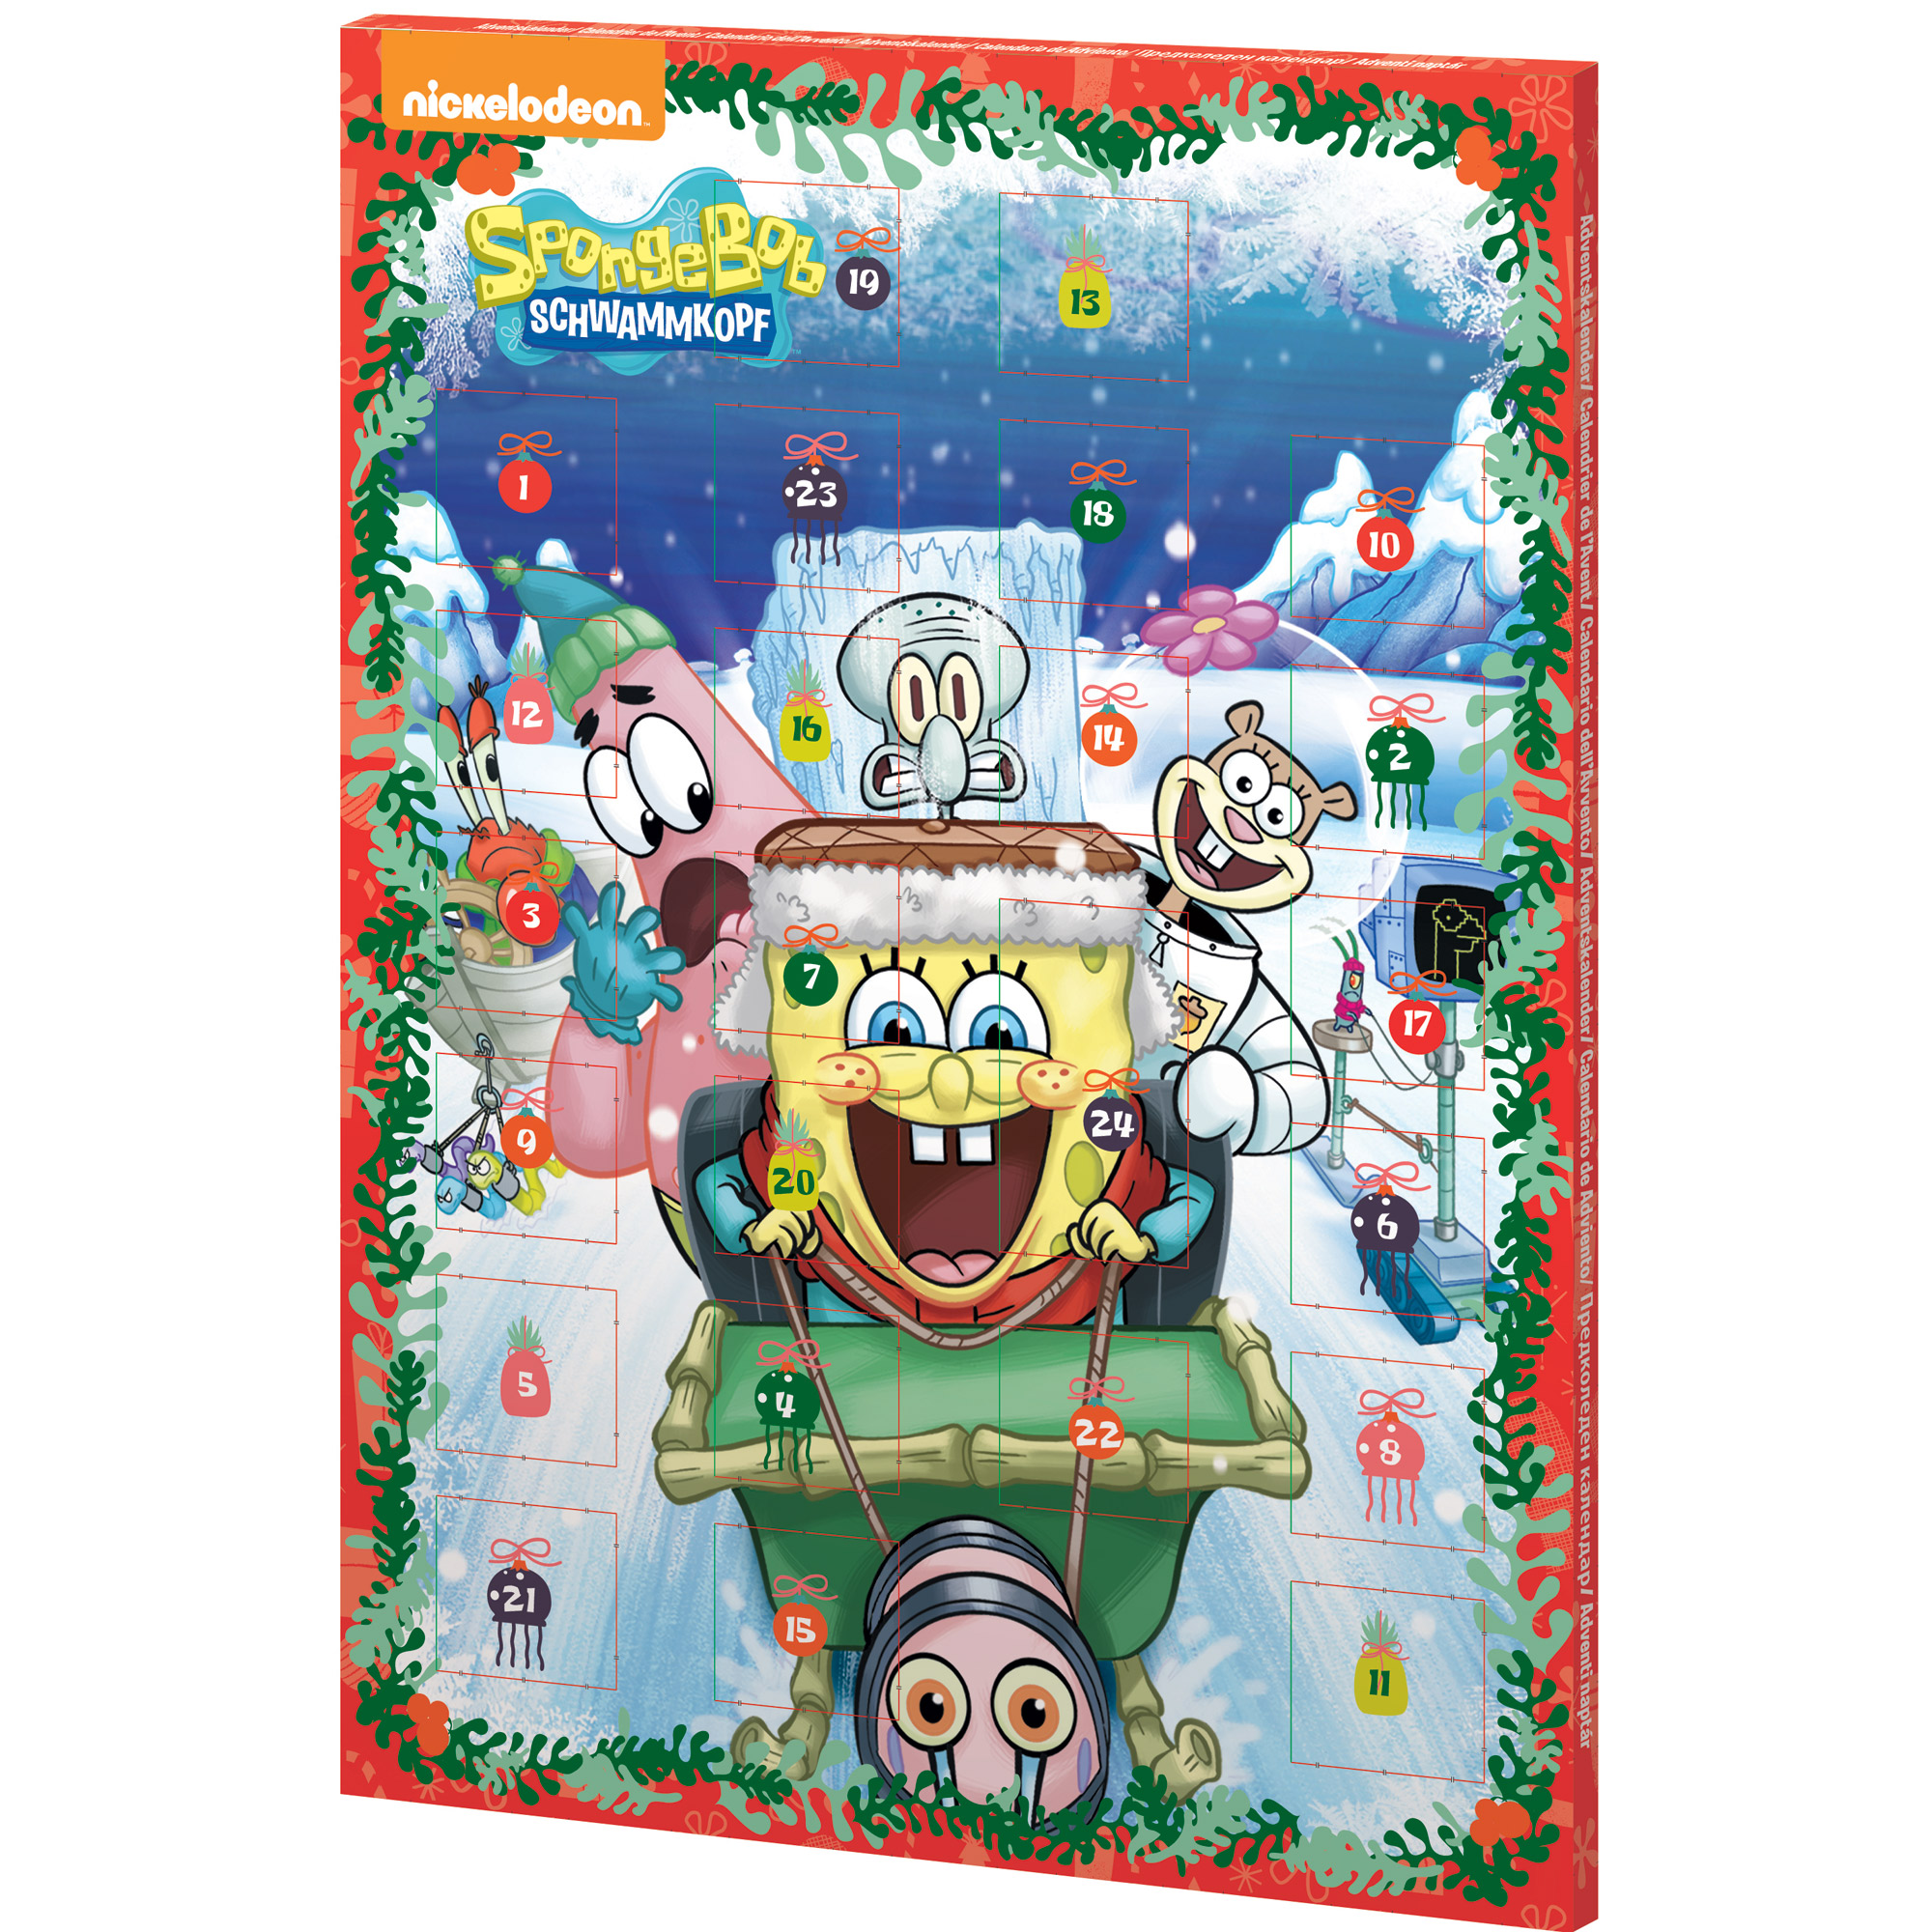 spongebob schwammkopf adventskalender. Black Bedroom Furniture Sets. Home Design Ideas